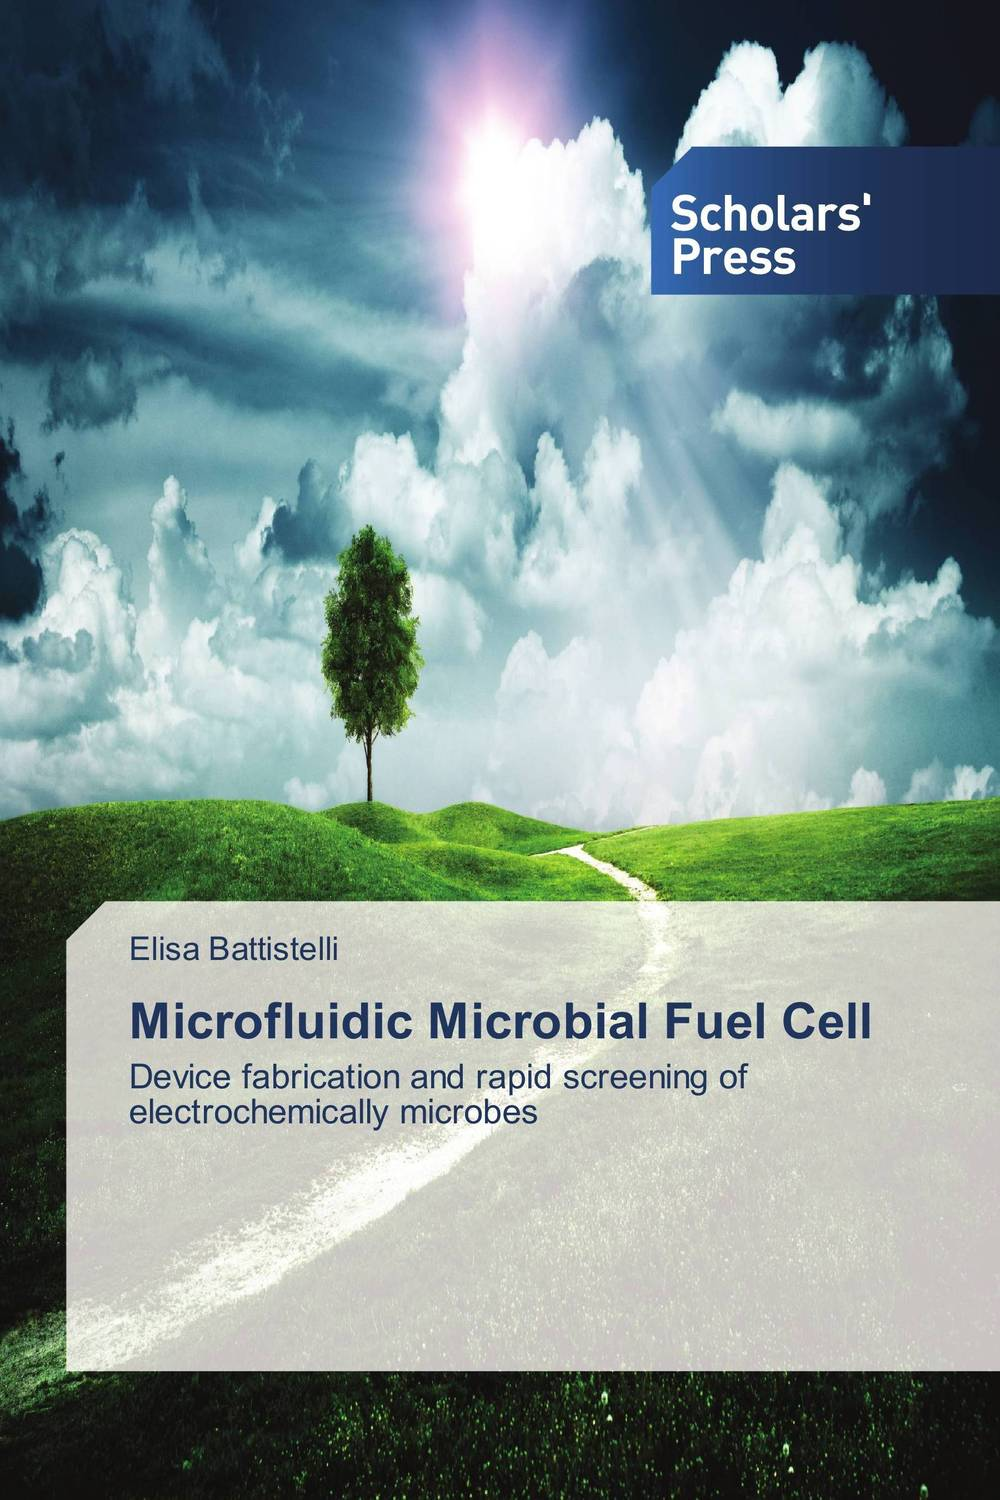 Microfluidic Microbial Fuel Cell ruminant feeds evaluation for microbial biomass synthesis efficiency